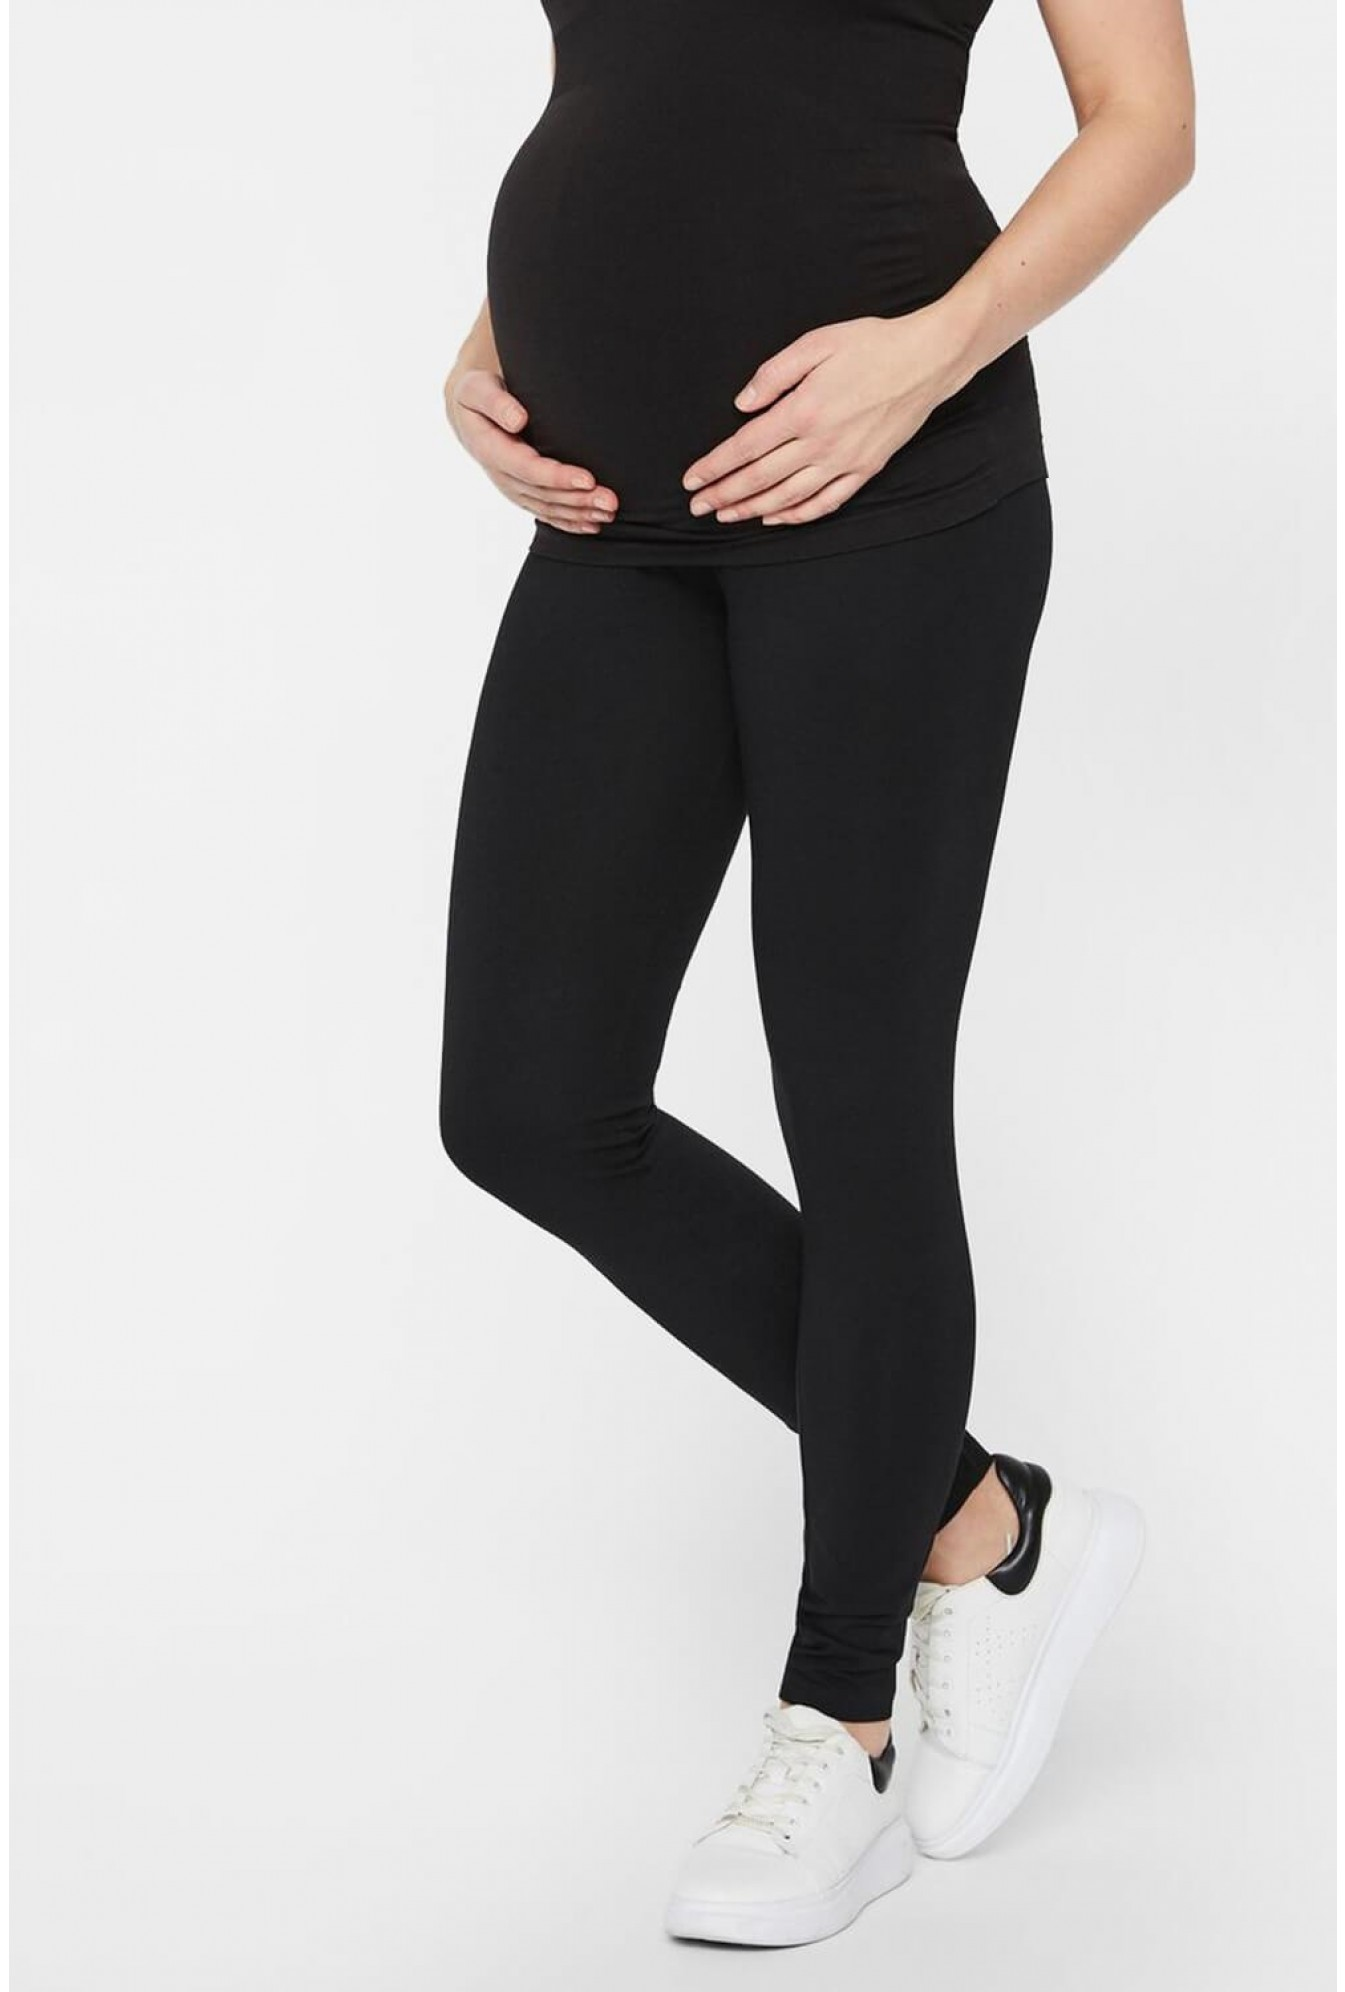 0d35553f1bf More Views. Lea Maternity Organic Cotton Leggings 2 Pack in Black.  Mamalicious